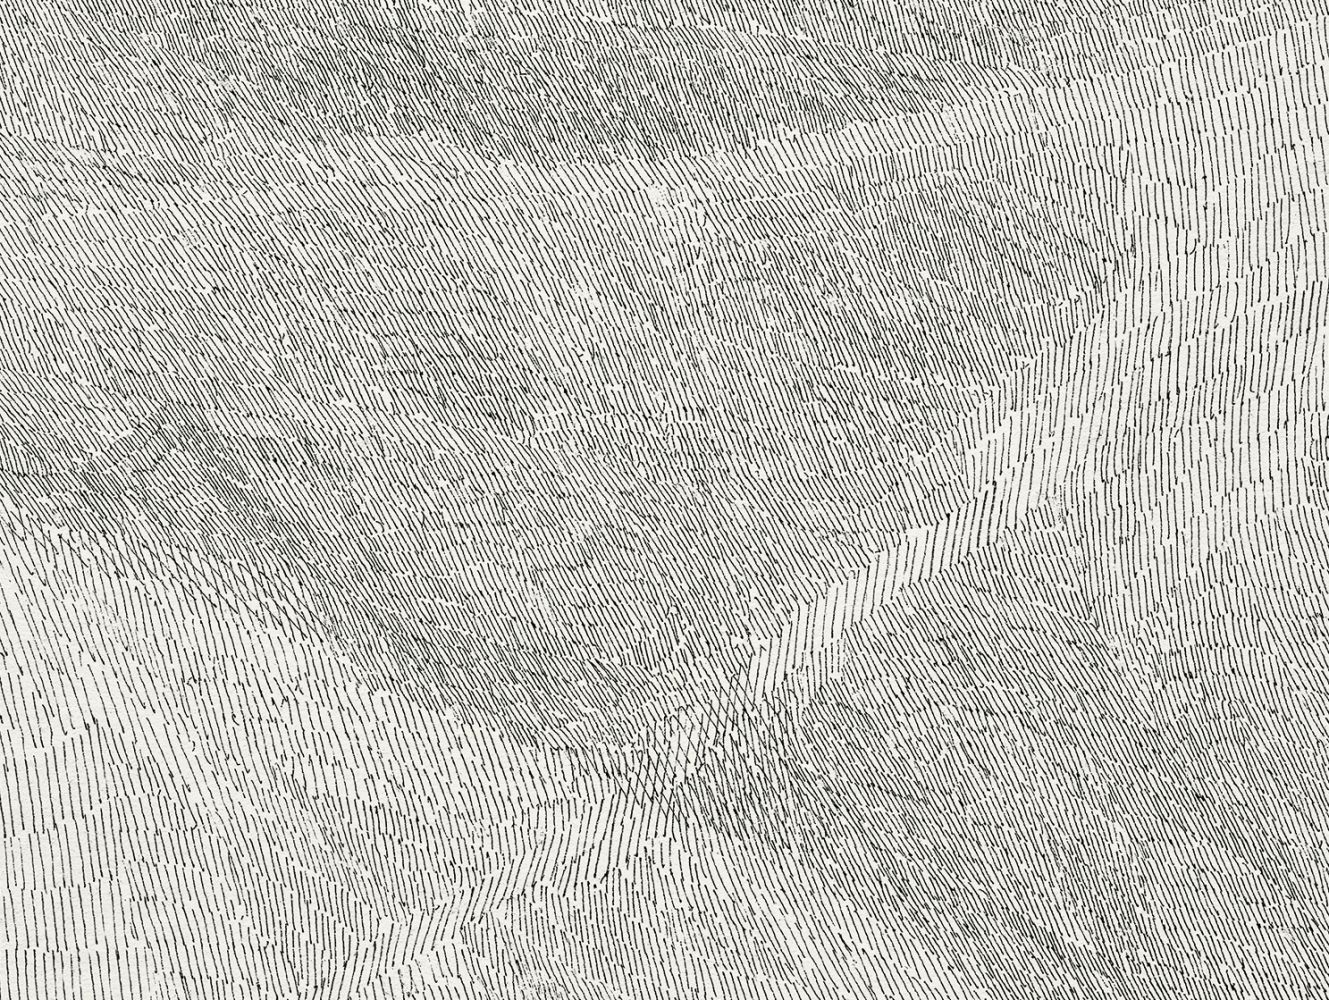 Detail of Linescape, 2012